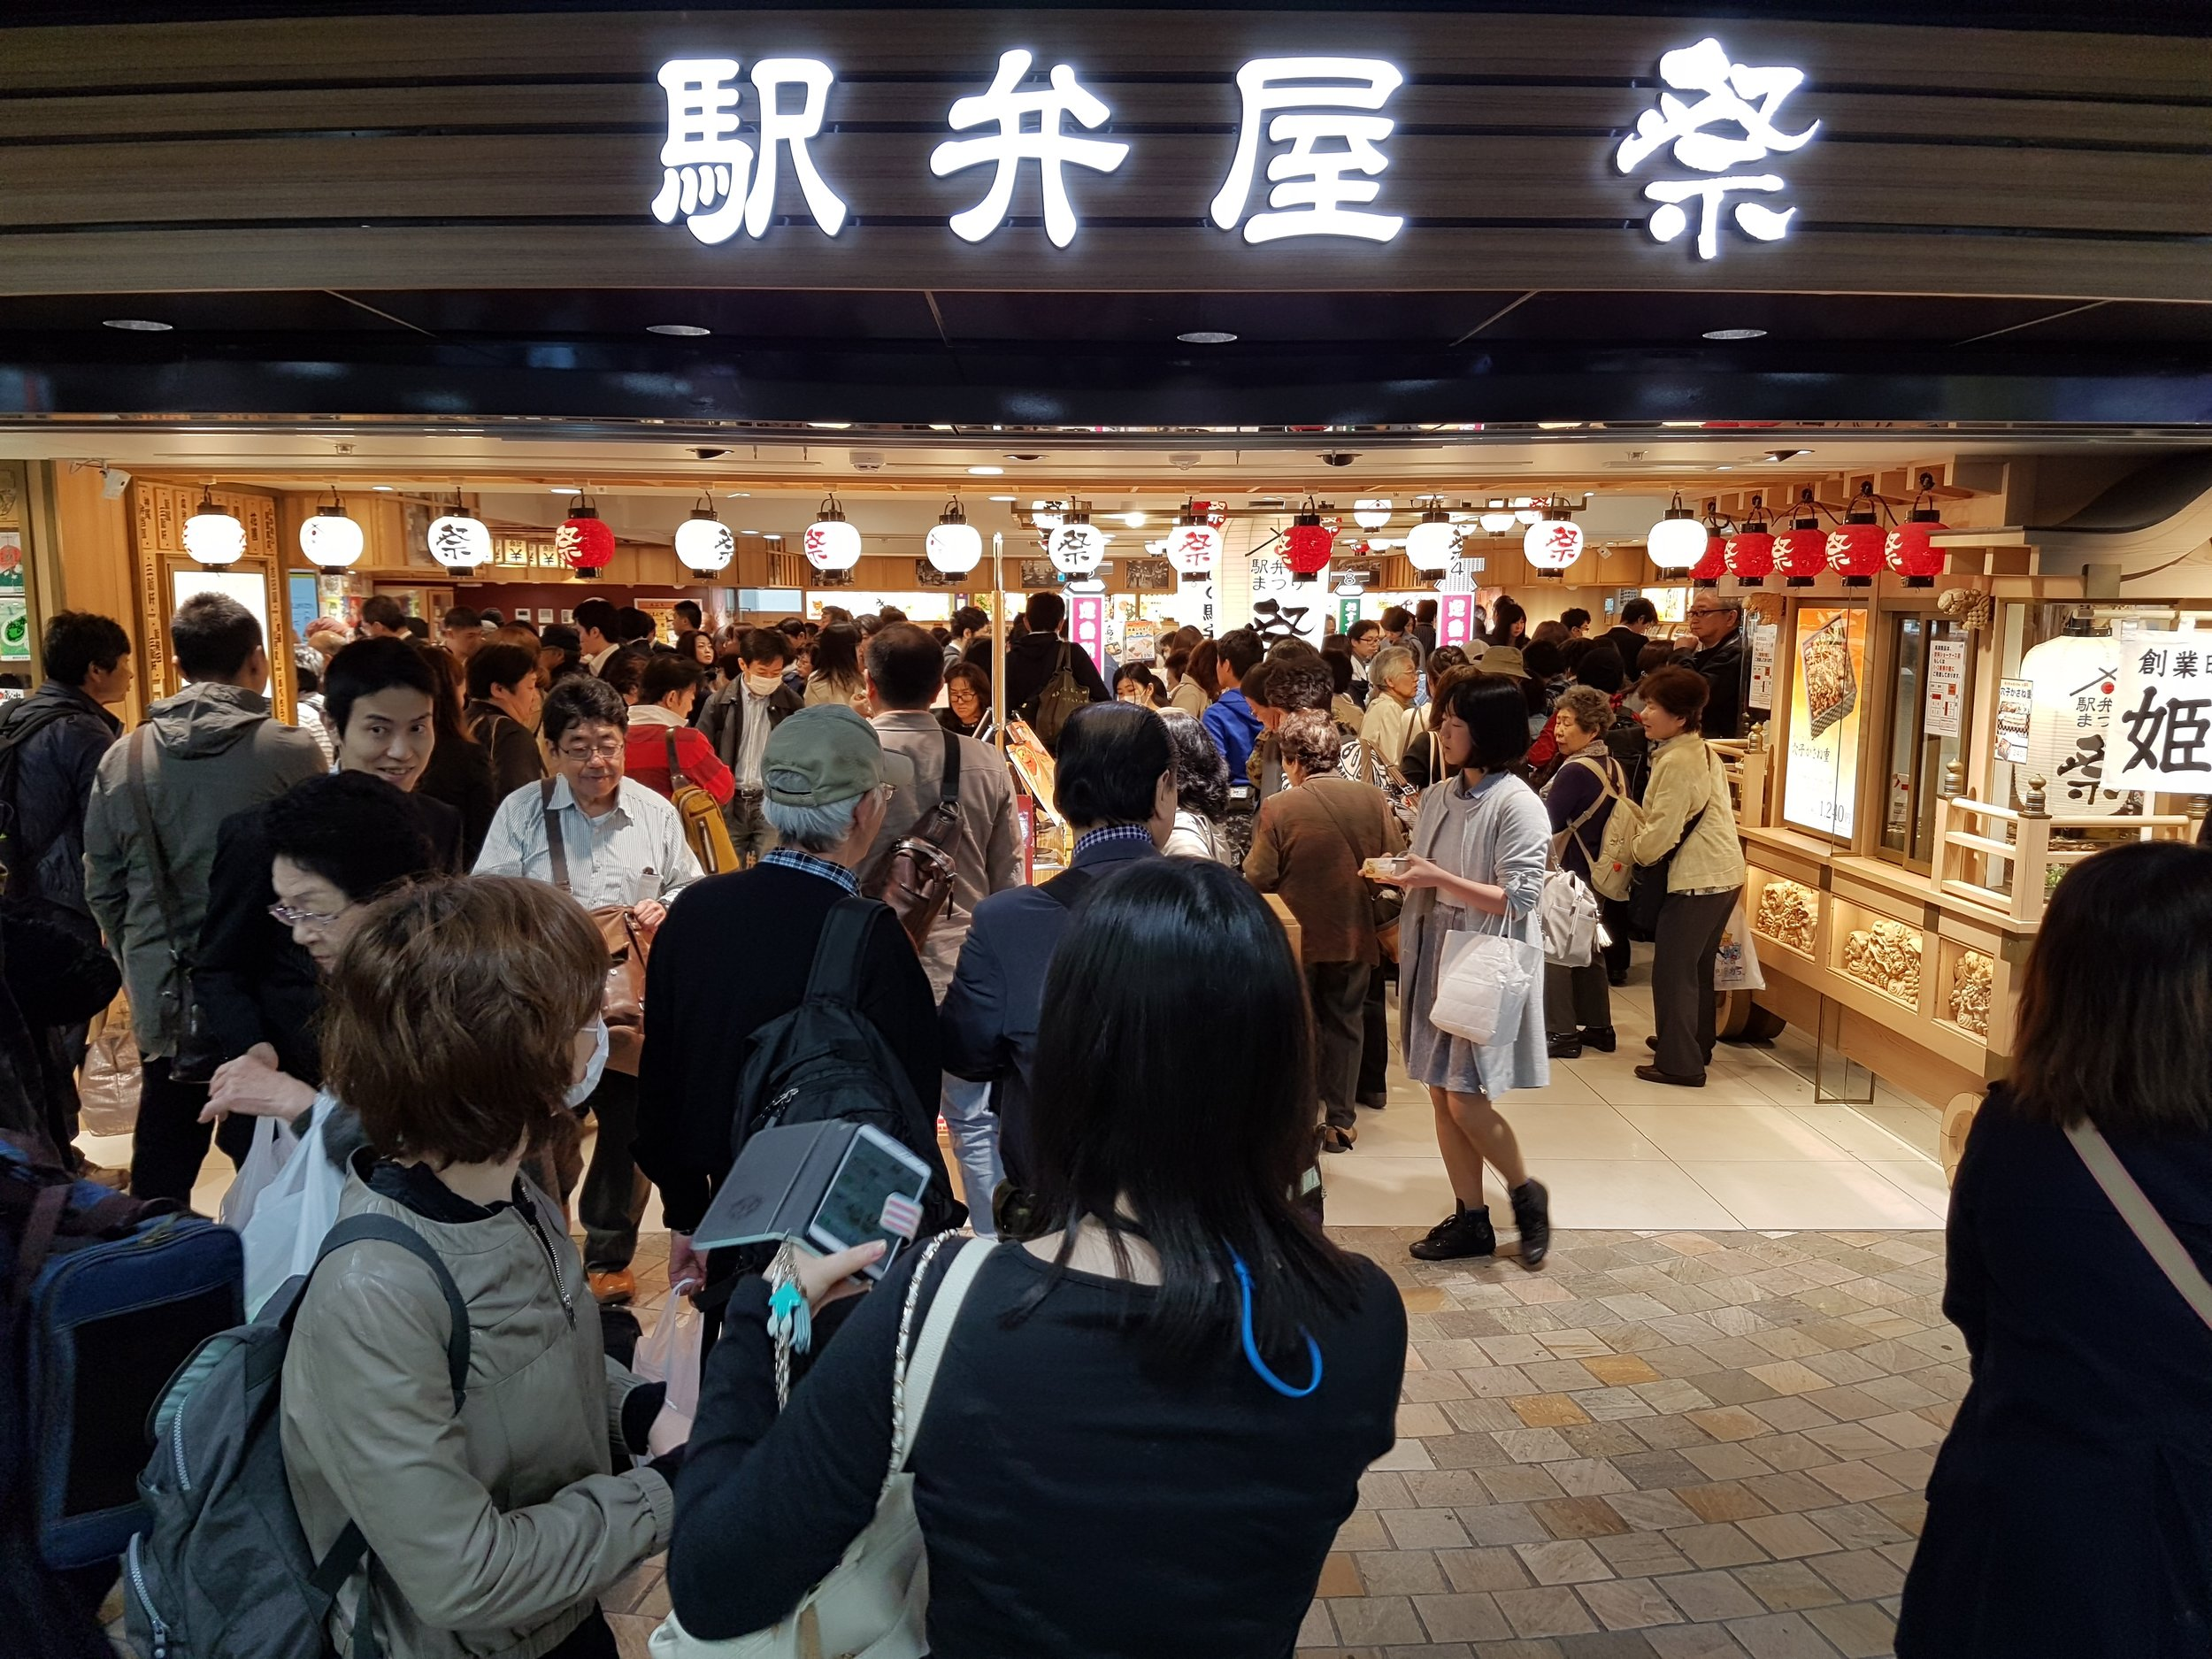 Check out the swarms of people at the Tokyo Station!    I would say the best ones are the ones with beef, and salmon with ikura. The other bento's are too out there for me, most of the stuff are hard!